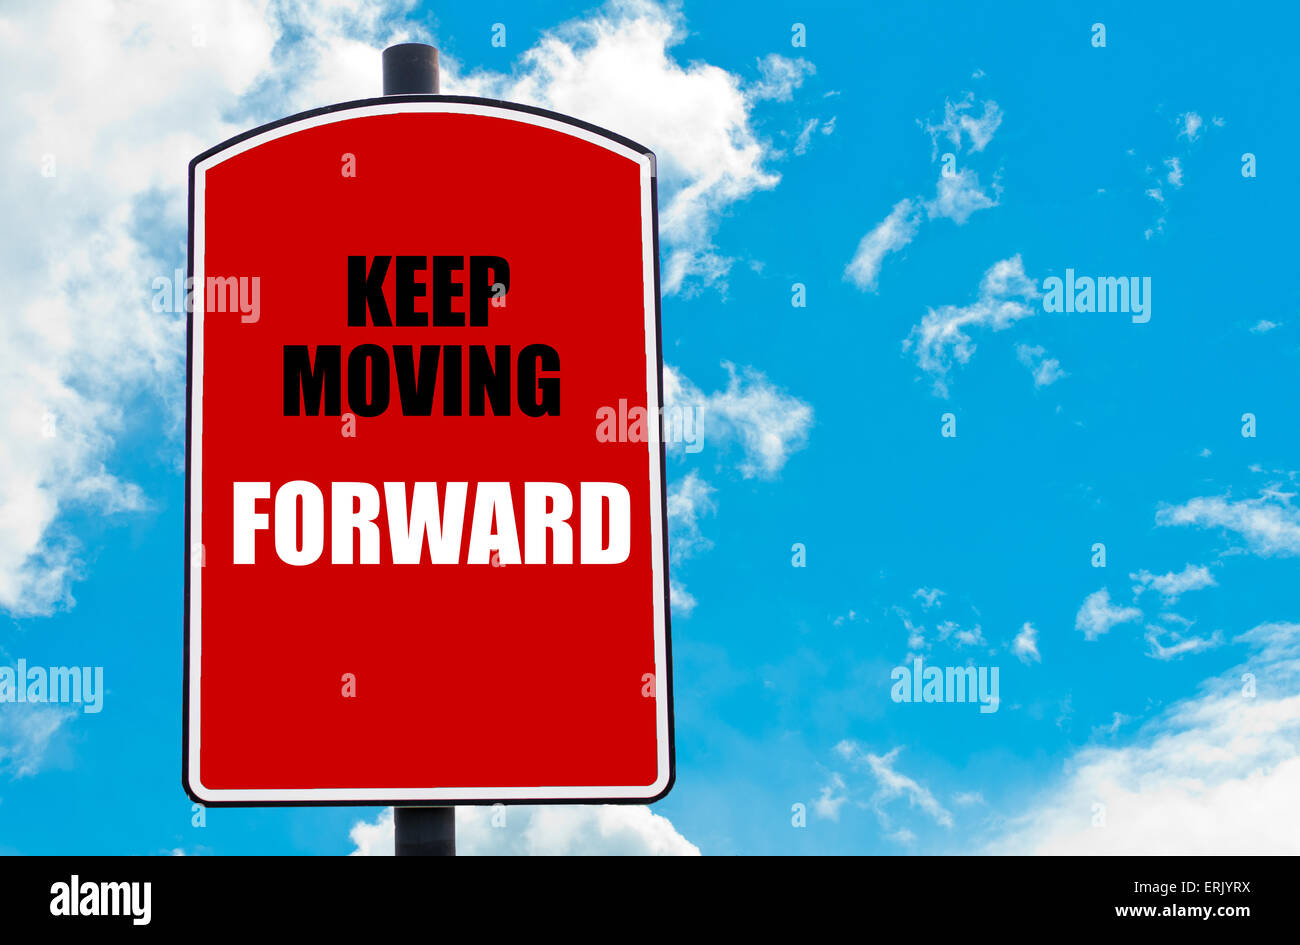 Keep Moving Forward  motivational quote written on red road sign isolated over clear blue sky background. - Stock Image